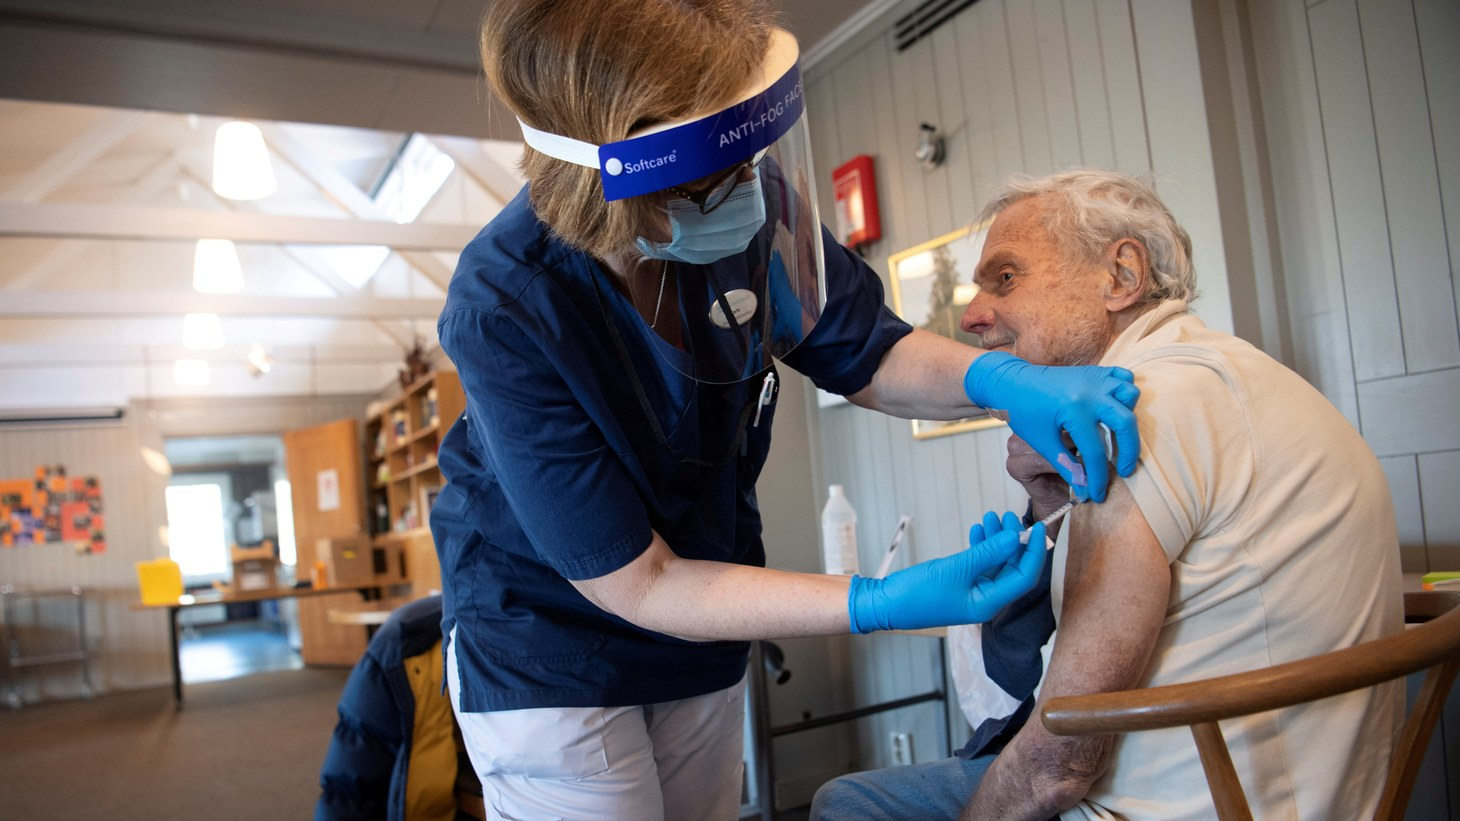 A health worker vaccinates an elderly person with Pfizer's COVID-19 vaccine at a temporary vaccination clinic in a church in Sollentuna, north of Stockholm, Sweden, March 2, 2021.